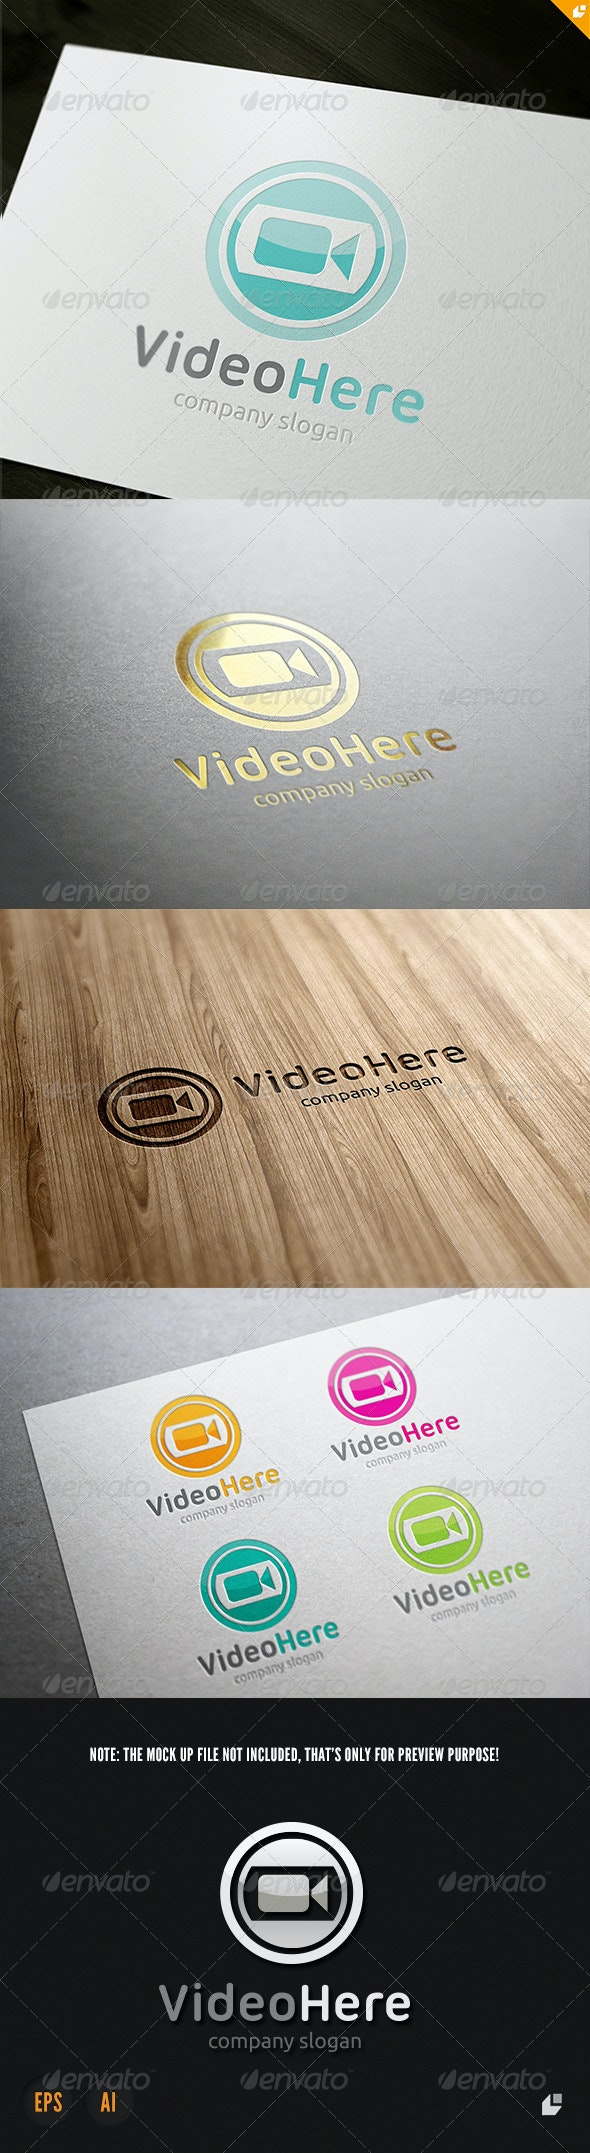 Video Here Logo - Vector Abstract